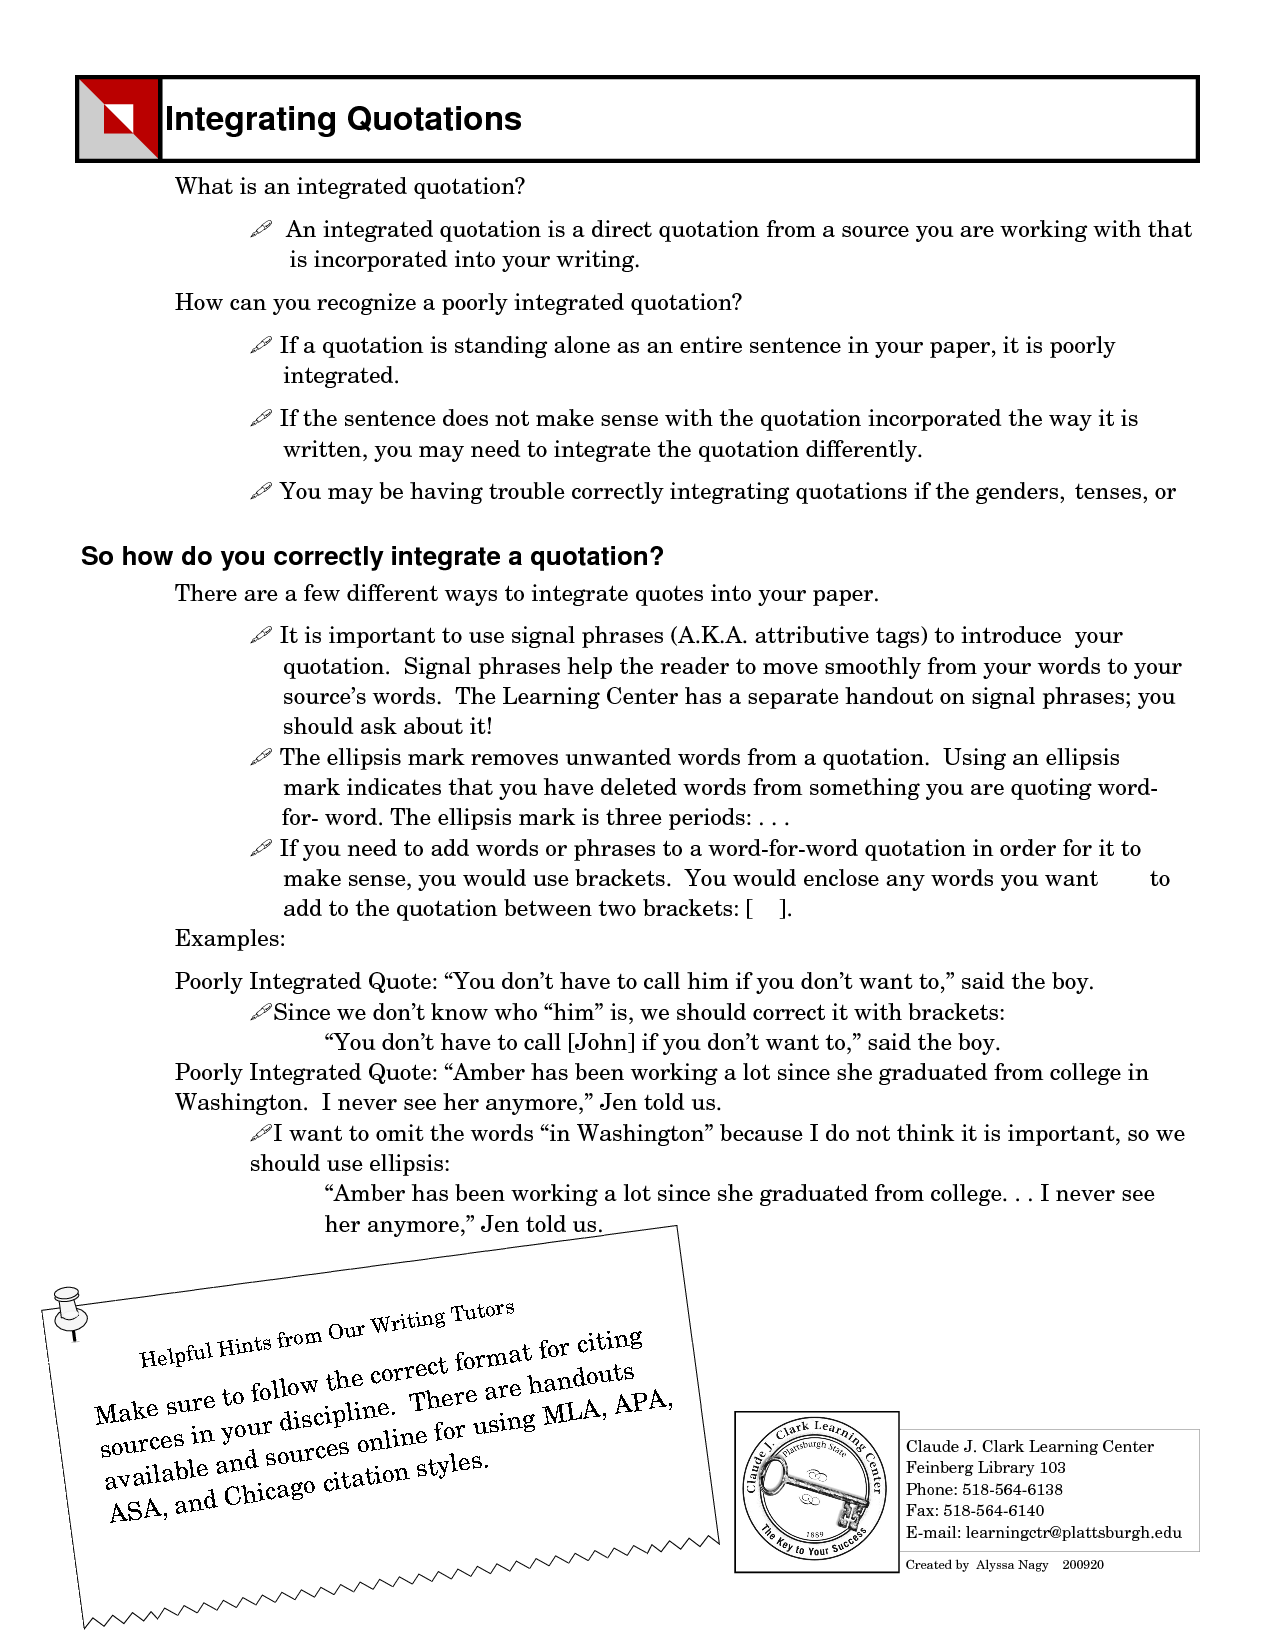 Integrating Quotes Worksheet Sharebrowse – Quotations Worksheet